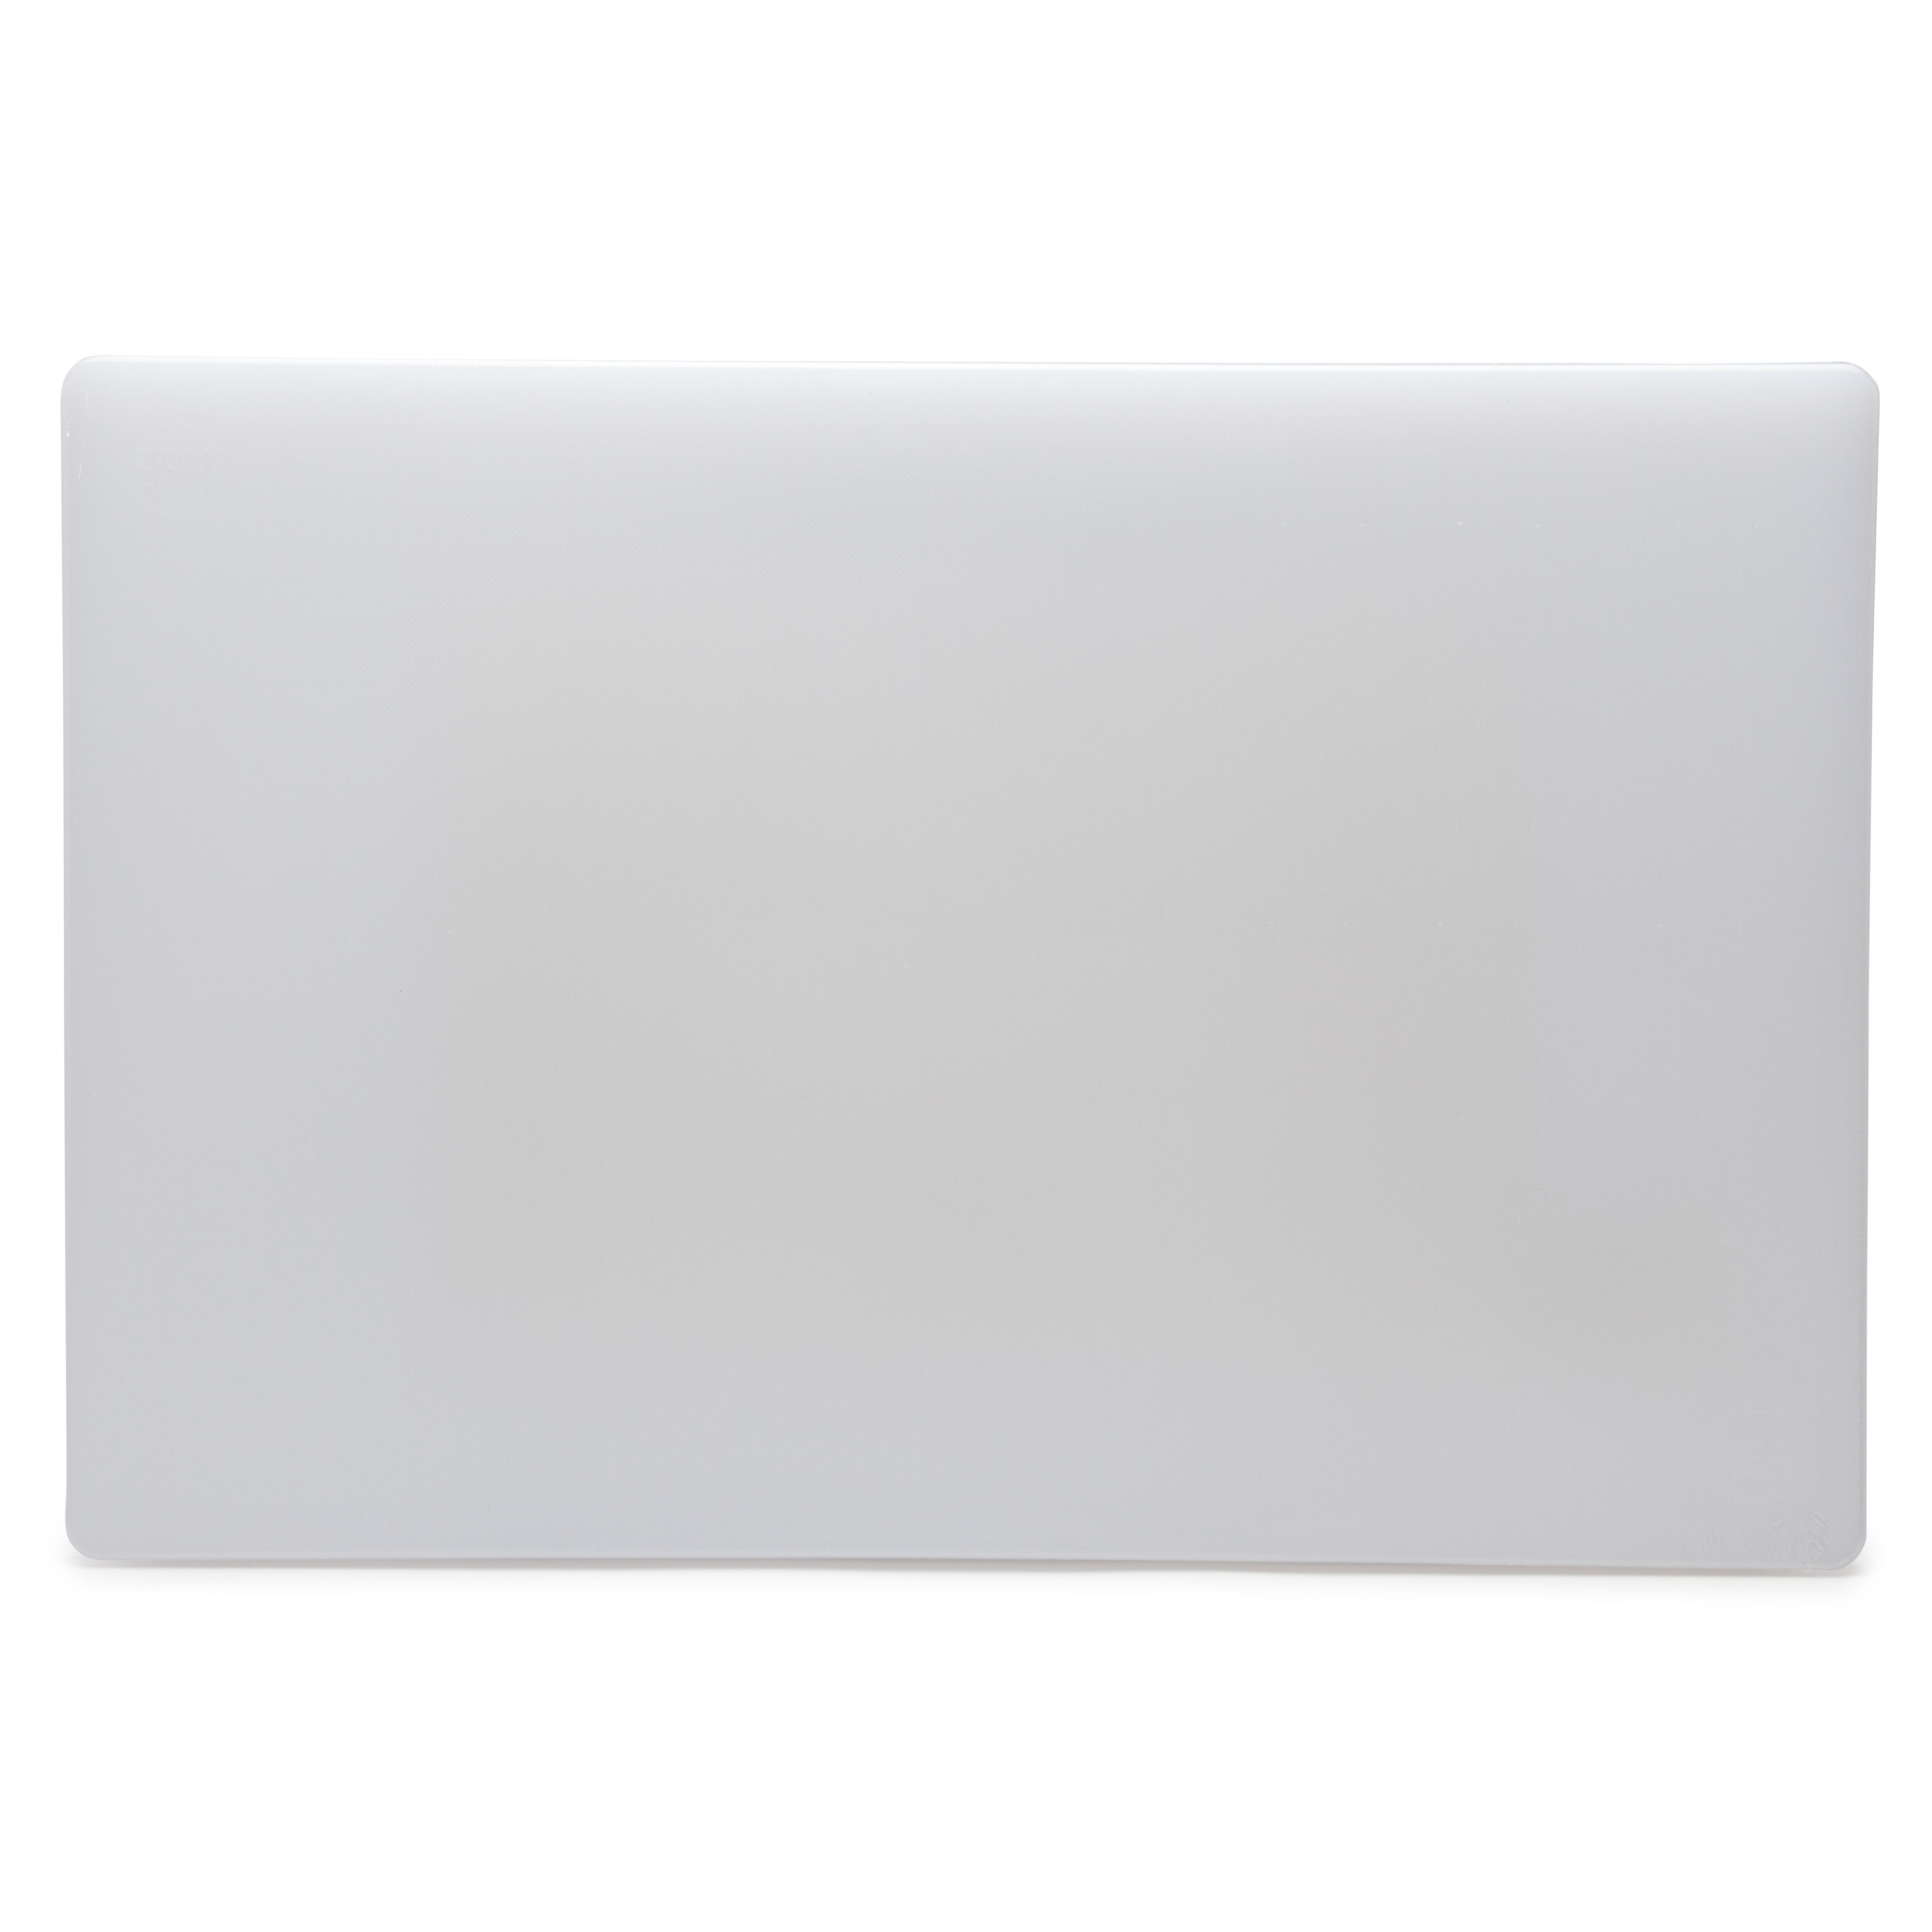 Royal Industries ROY CB 152034 cutting board, plastic